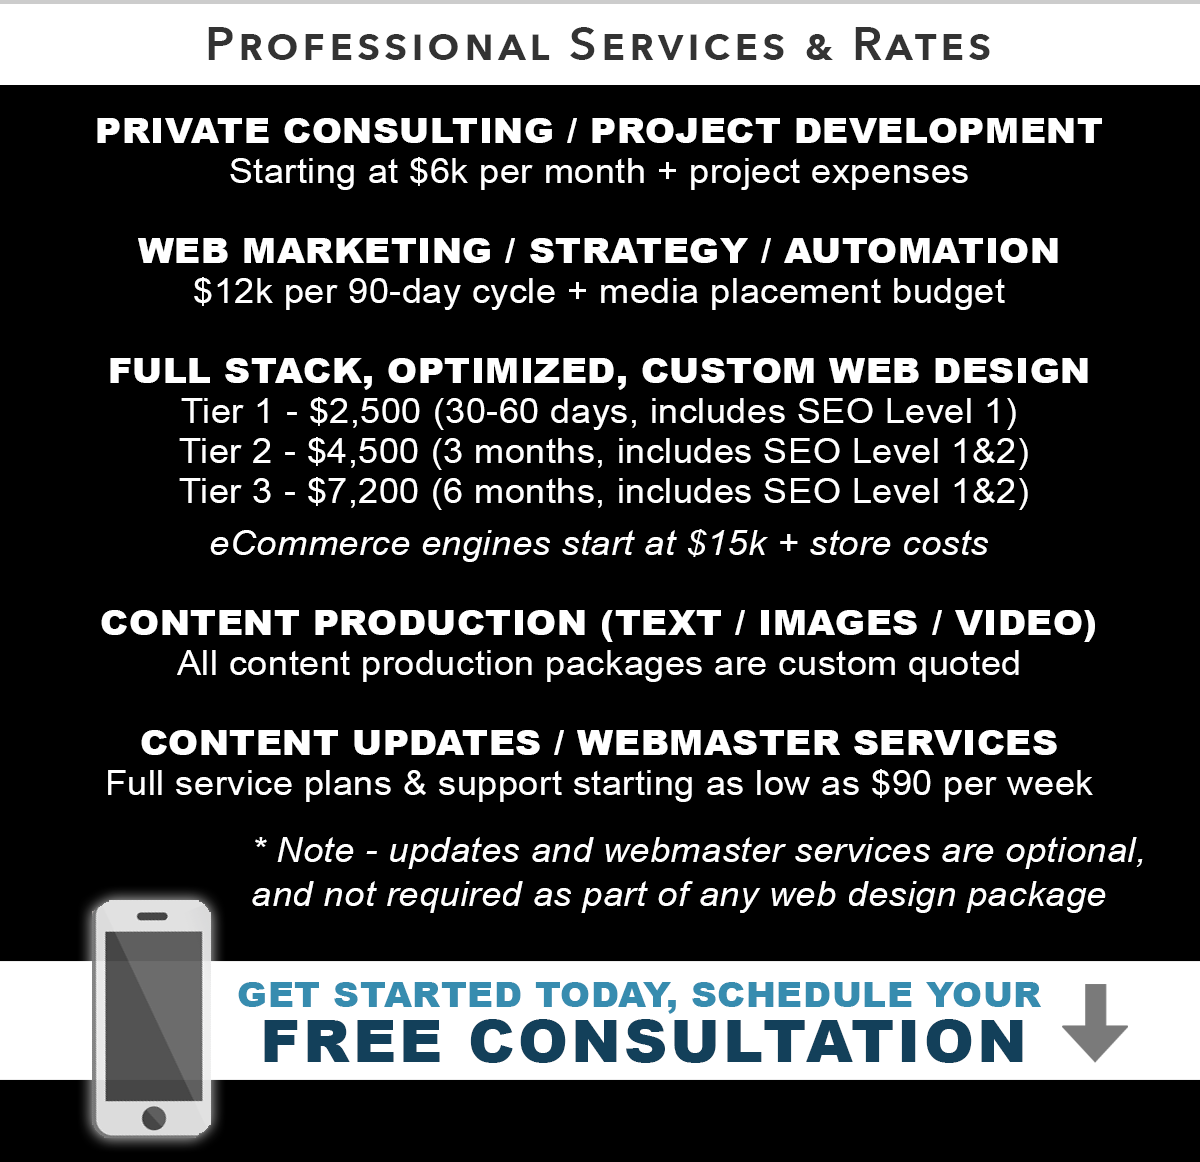 WebWorkPro services and rates for professional website design, web development, consulting, project management, content development, and webmaster services.